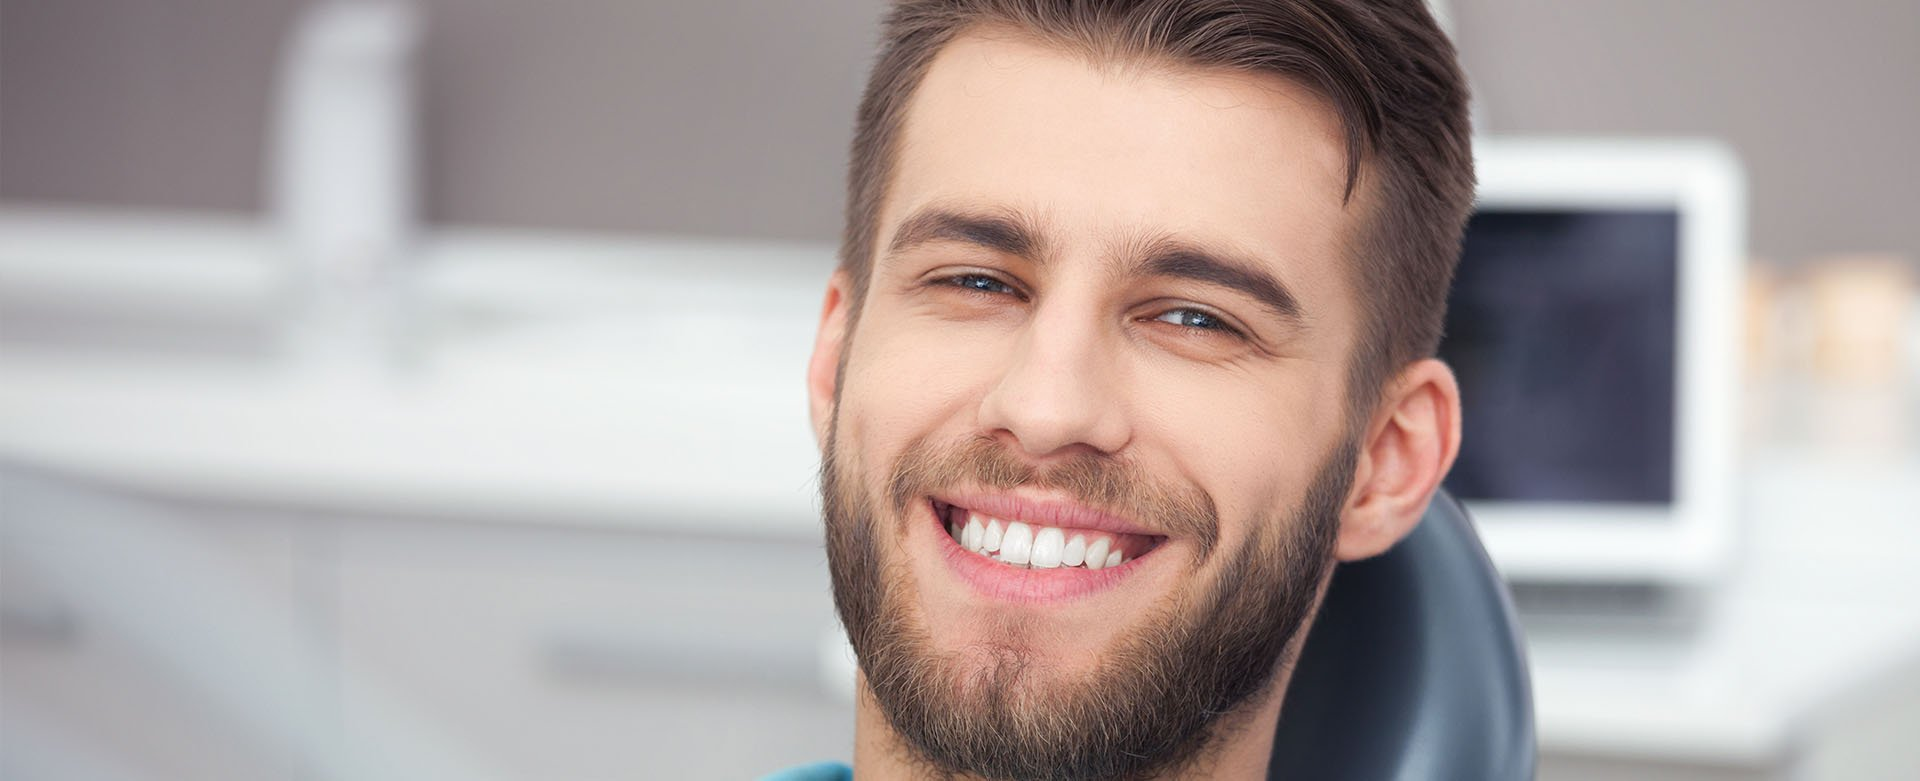 North Palm Beach Implant Dentist